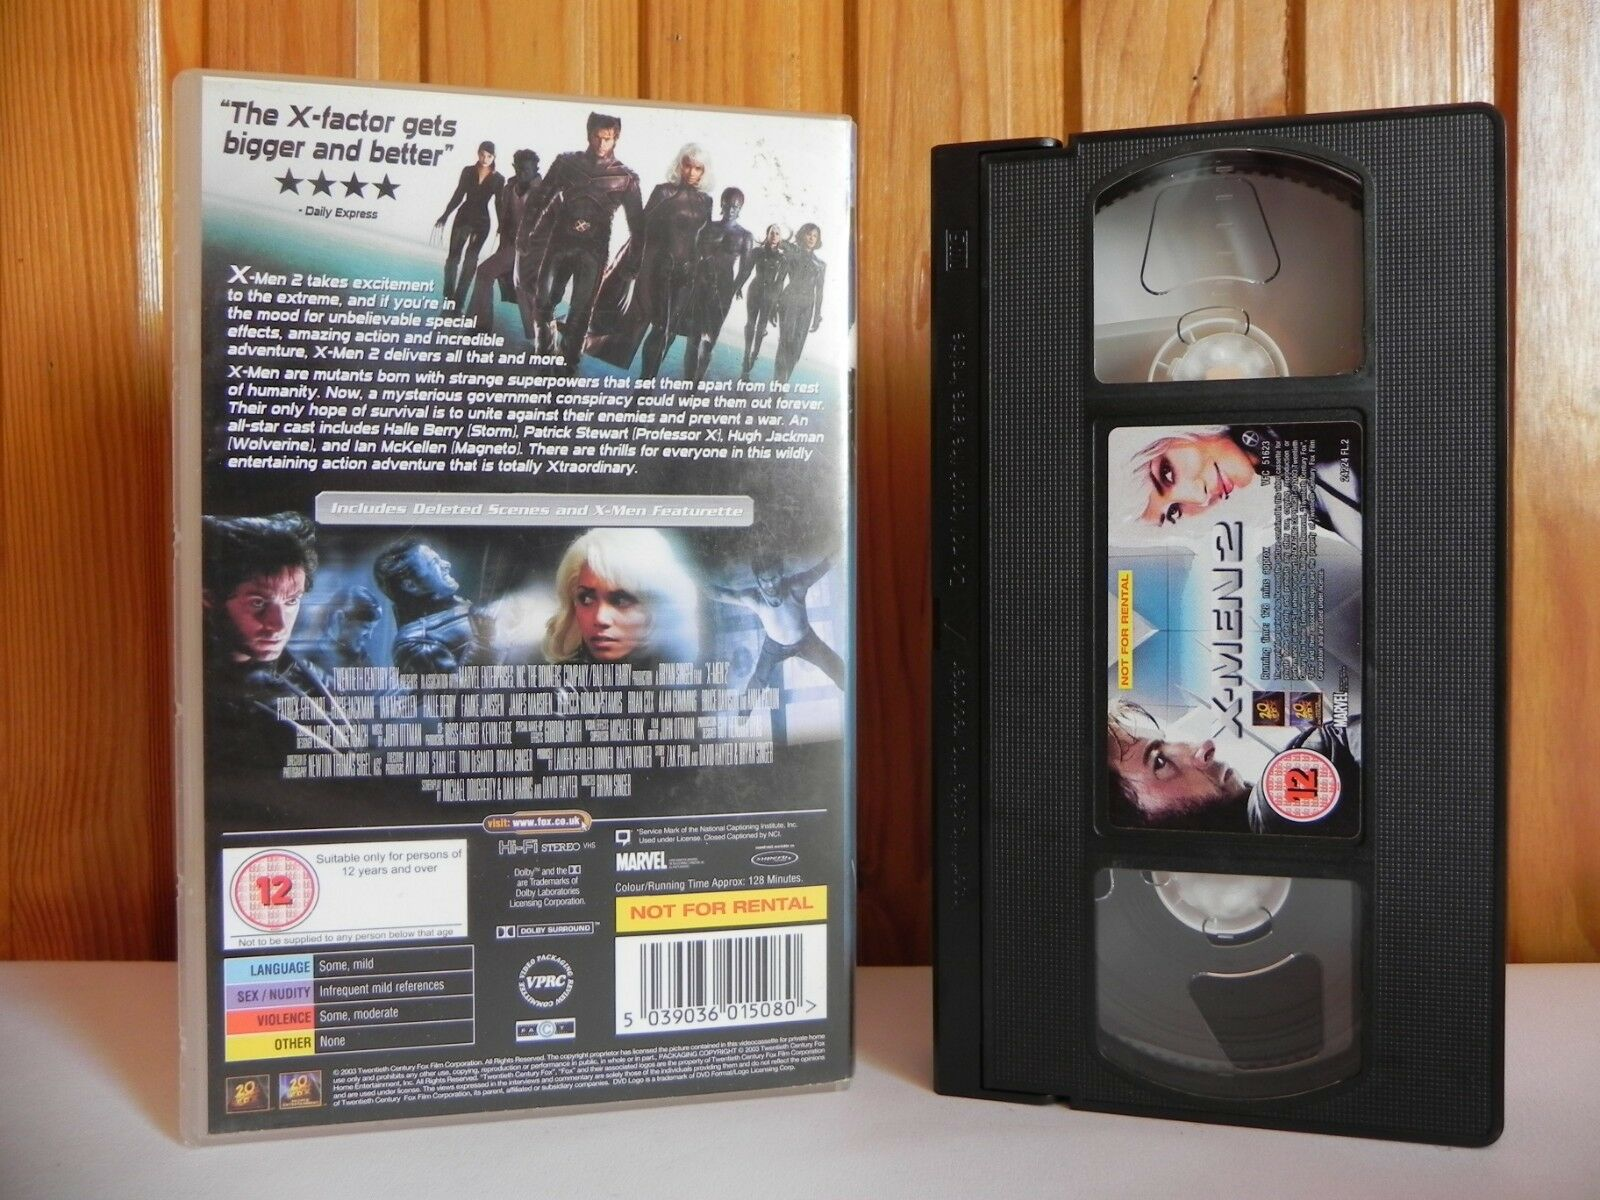 X-Men 2 - 20th Century Fox - Action - Patrick Stewart - Hugh Jackman - Pal VHS